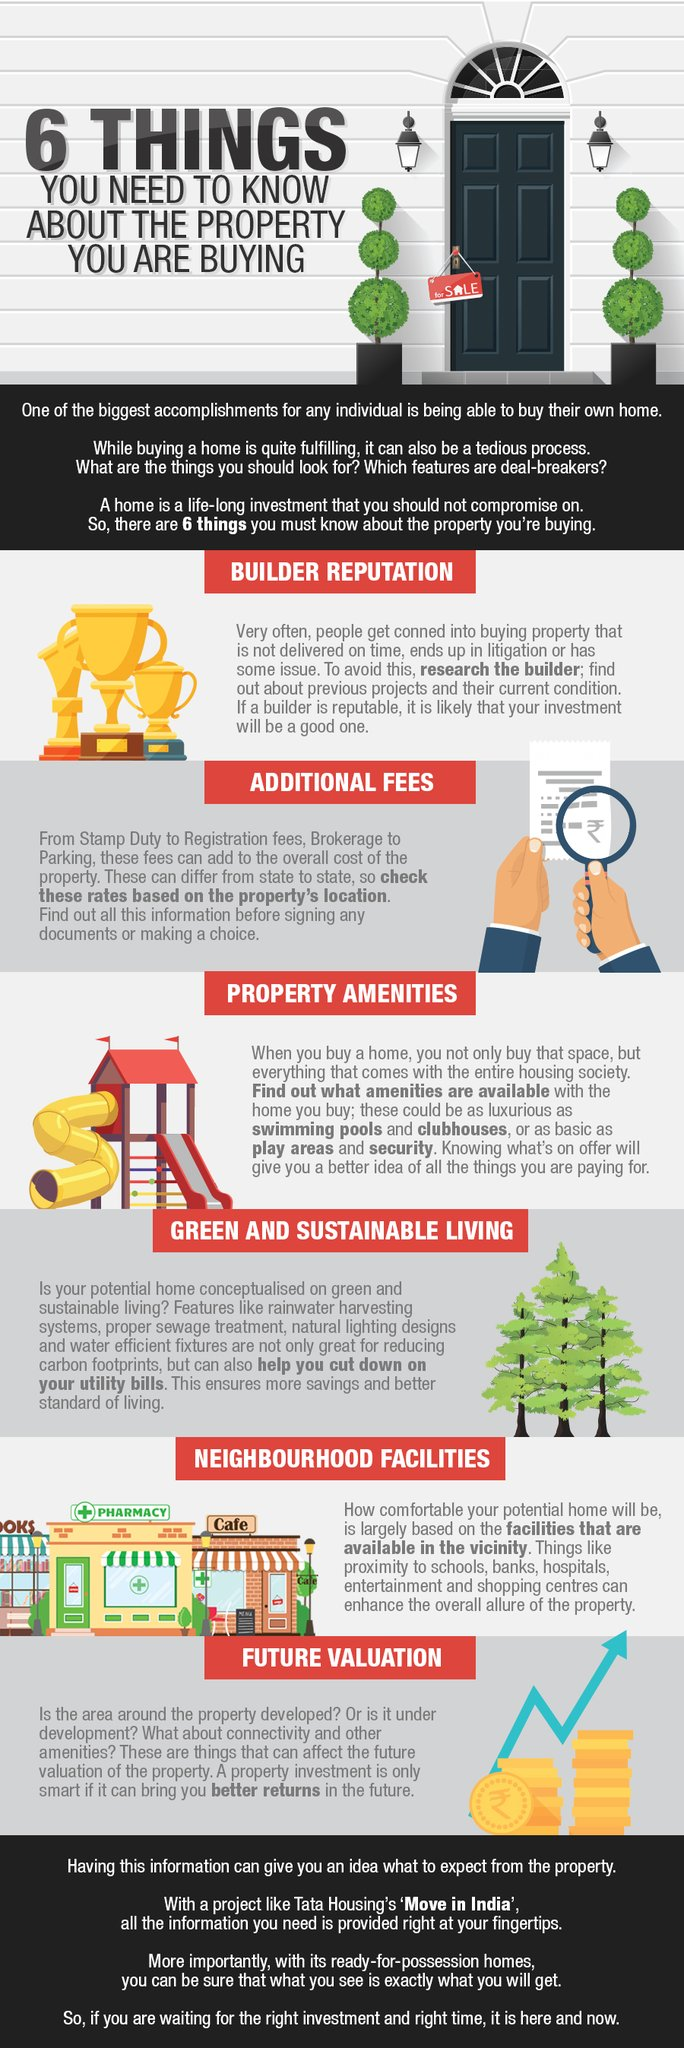 6 Things You Need To Know About The Property You Are Buying